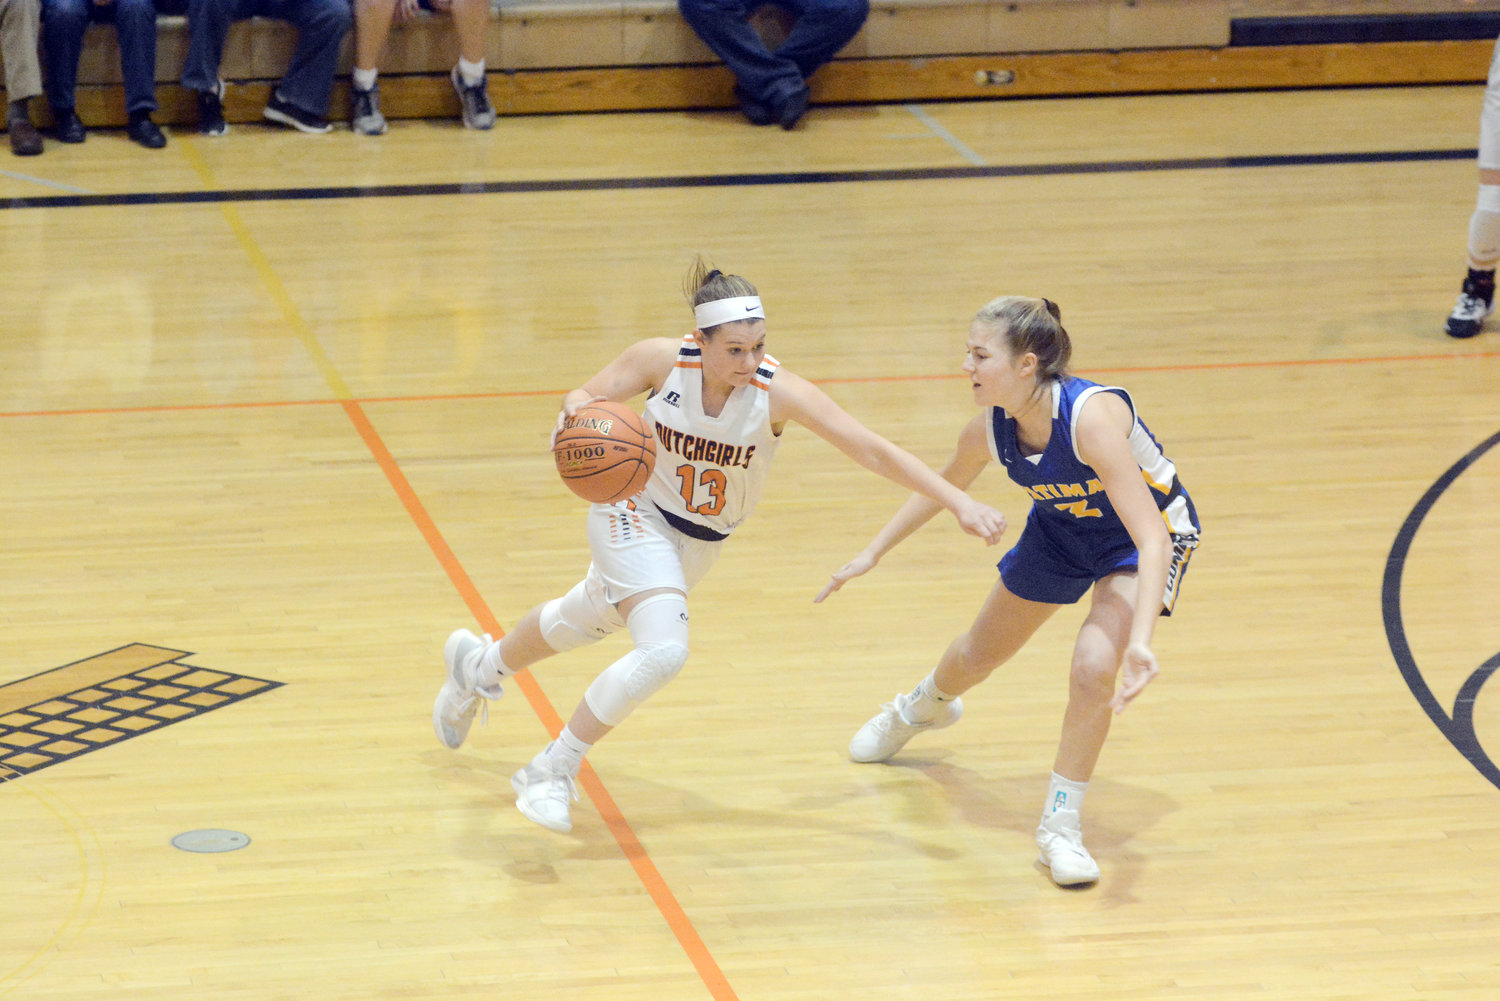 Katelyn Landolt (above, left) extends her arm to create separation between herself and Fatima's Dani Stegeman during Owensville's 52-30 loss last Thursday at Owensville High School. These two teams could meet again Friday in the Comet Classic Girls Basketball Tournament at Fatima High School in Westphalia.